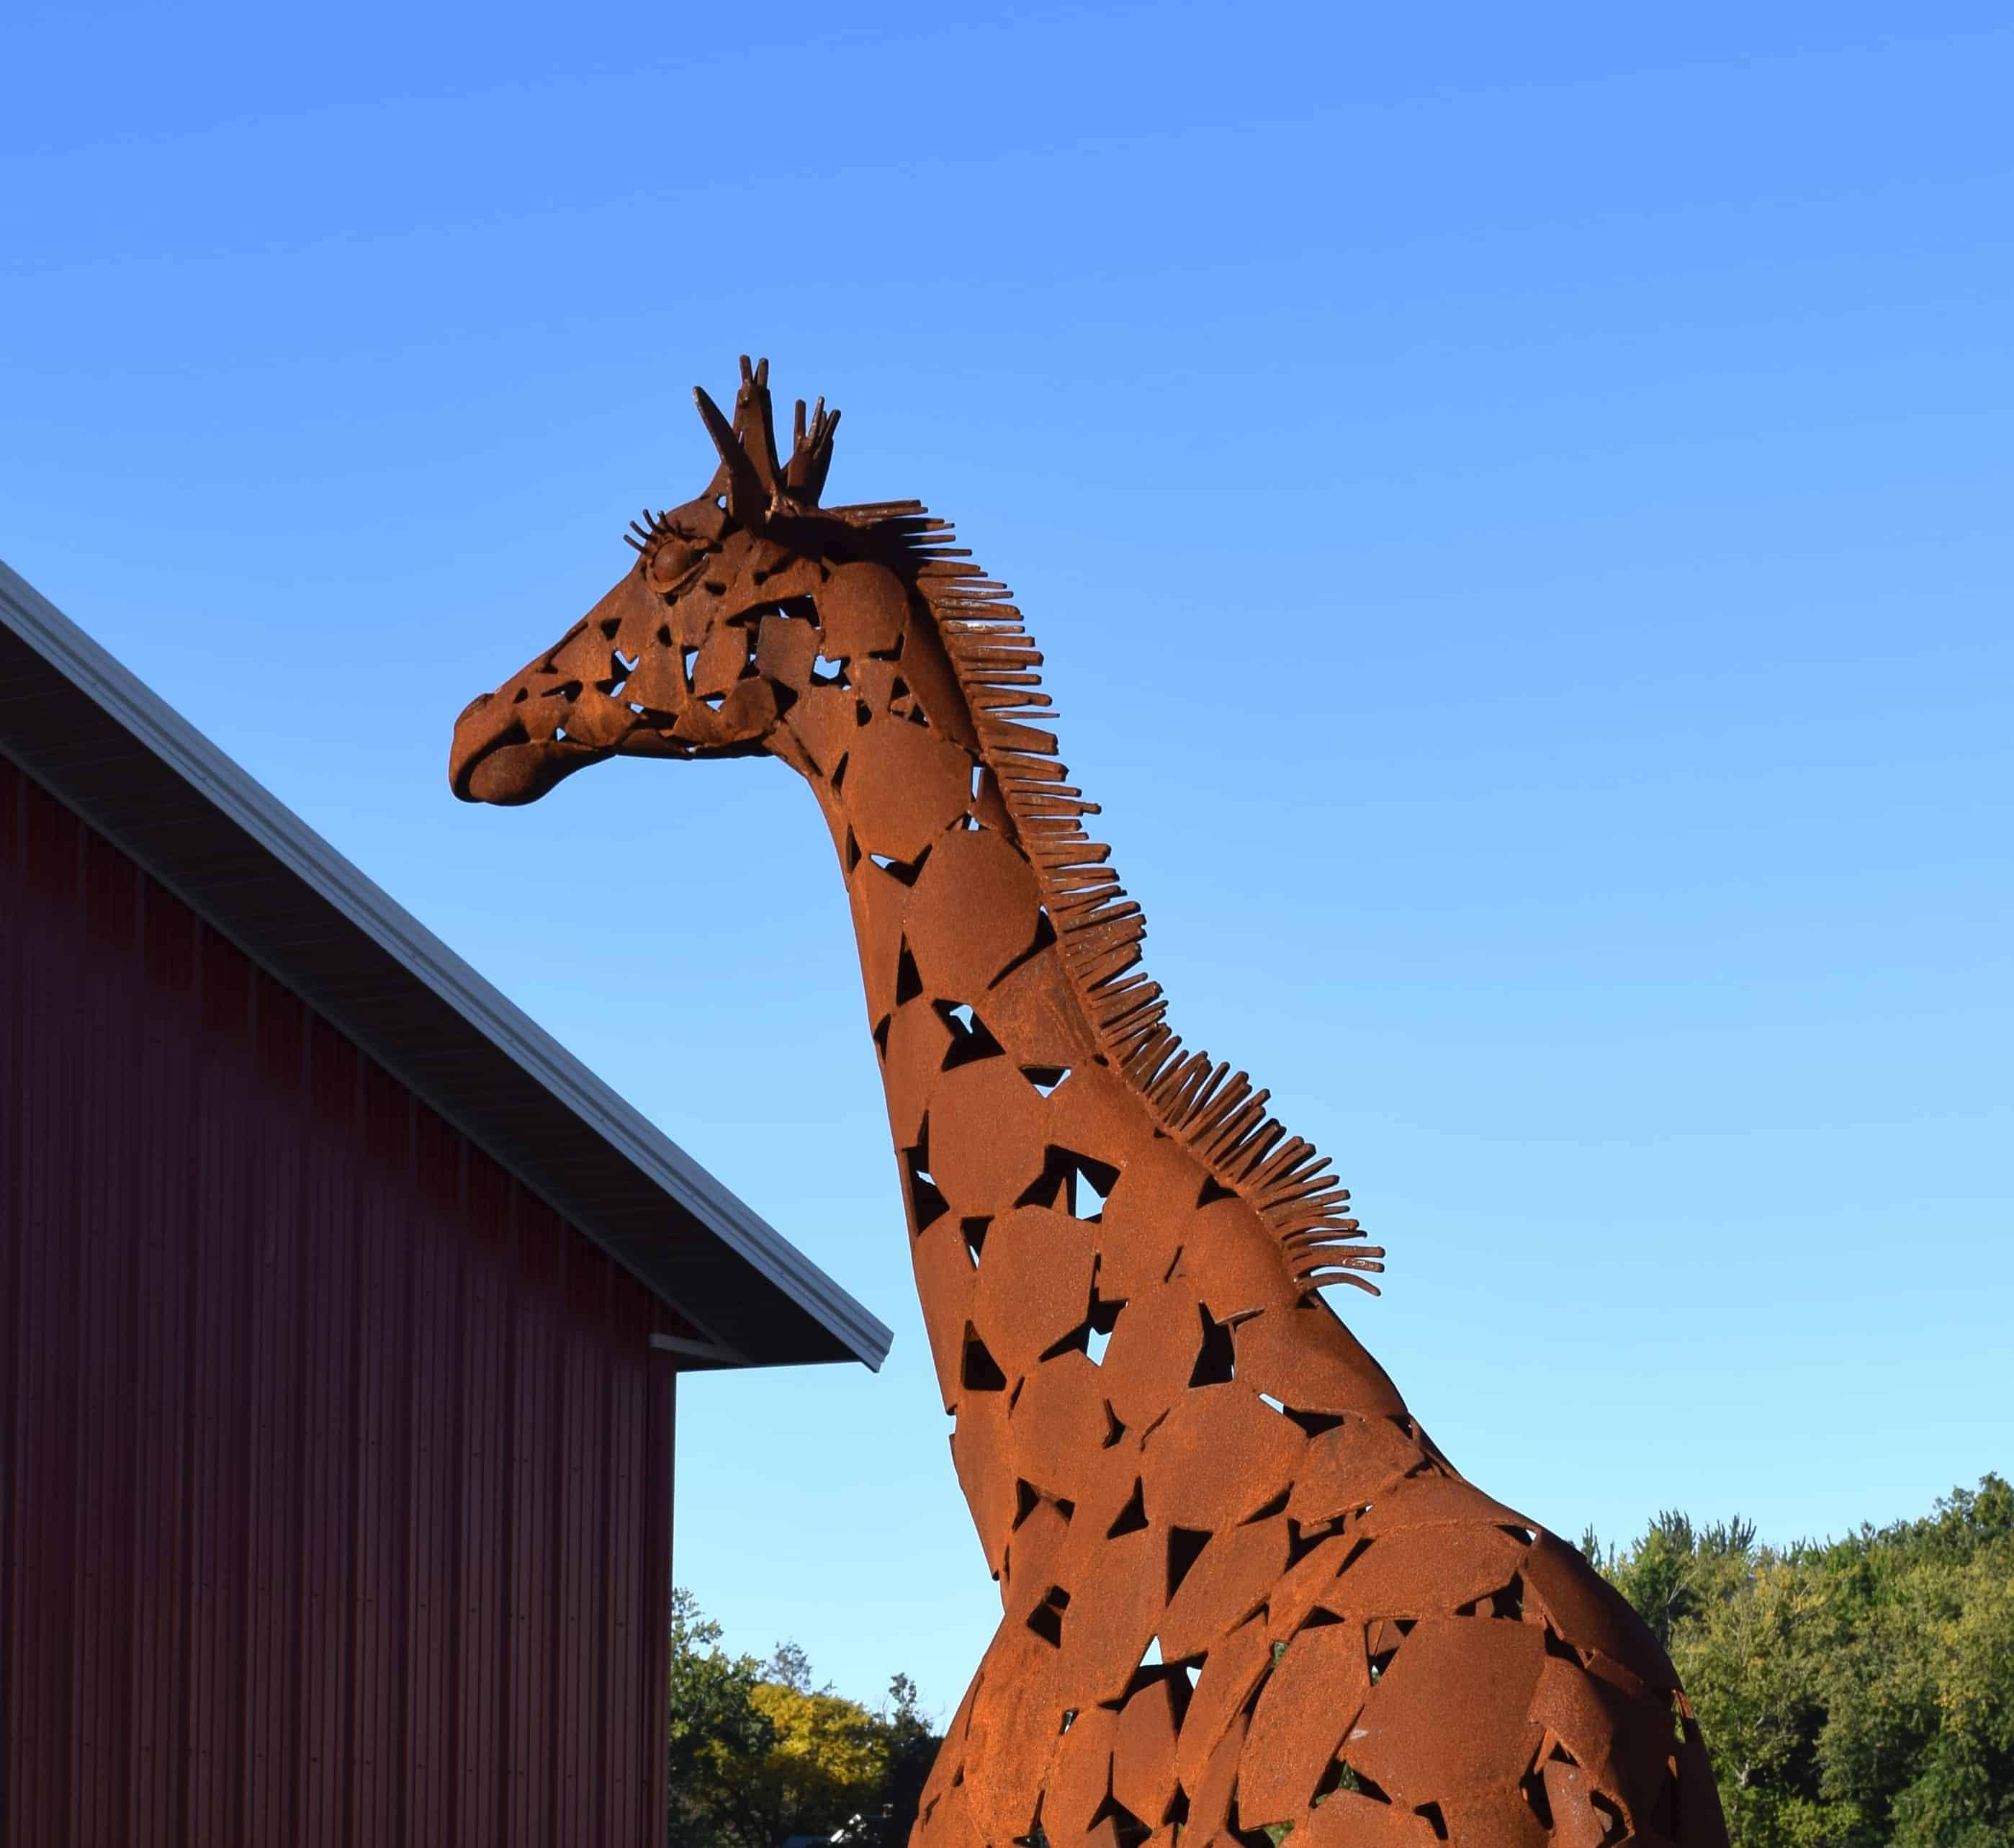 All manner of wild things, from bronze herons and glass-eyed dragonflies to towering giraffes, line new Sculpture Promenade — giant clay pots, stone fountains, outdoor seating, birdbaths. Photo courtesy of Paradise City Arts Festival in Northampton